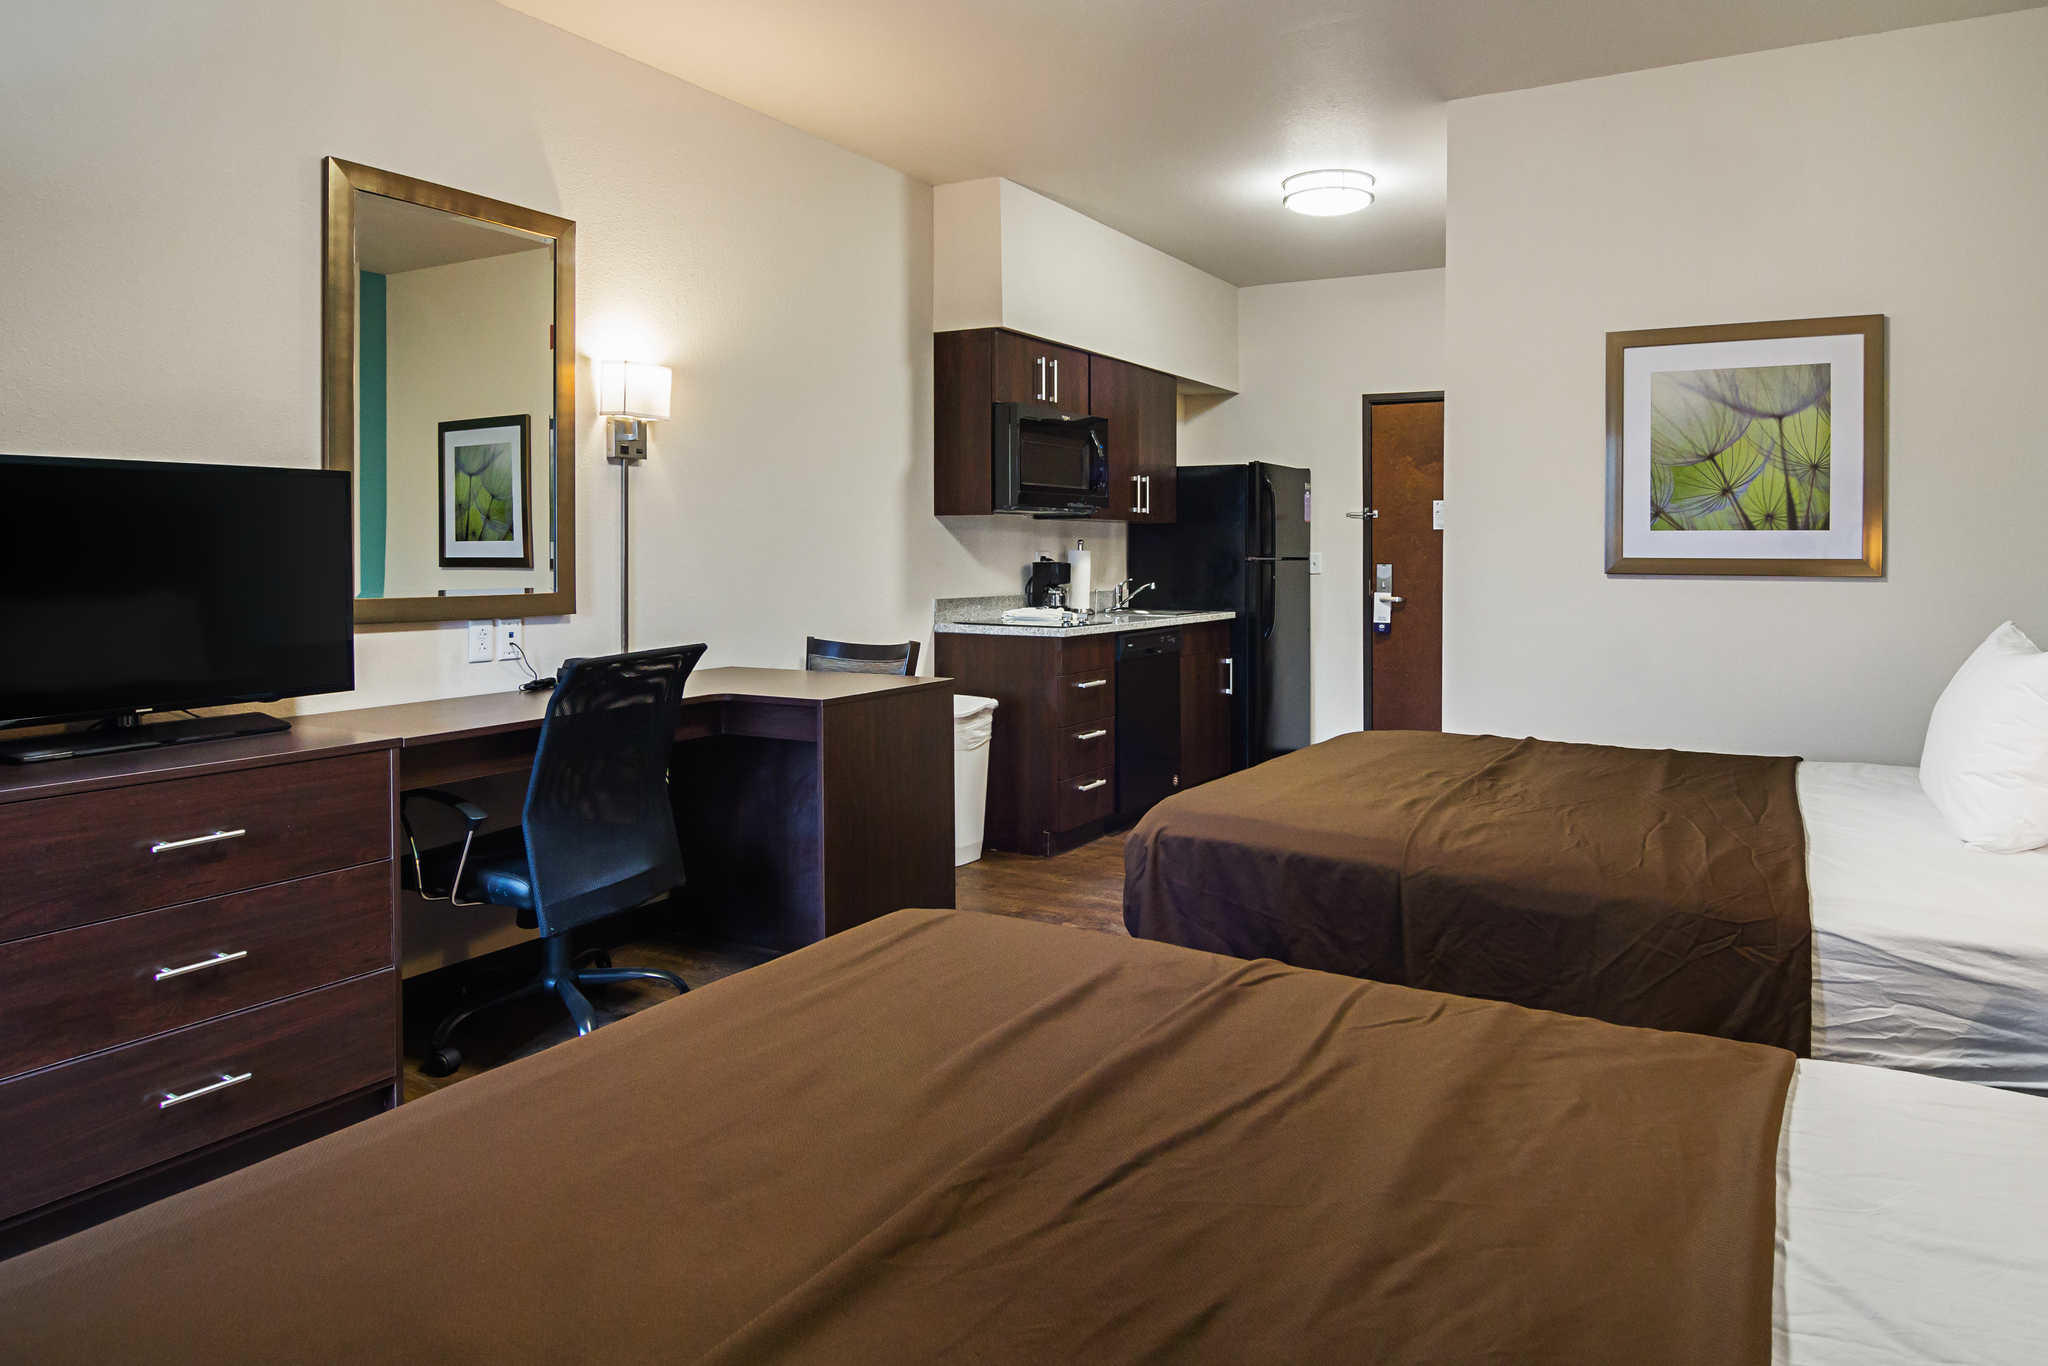 Suburban Extended Stay Hotel image 38